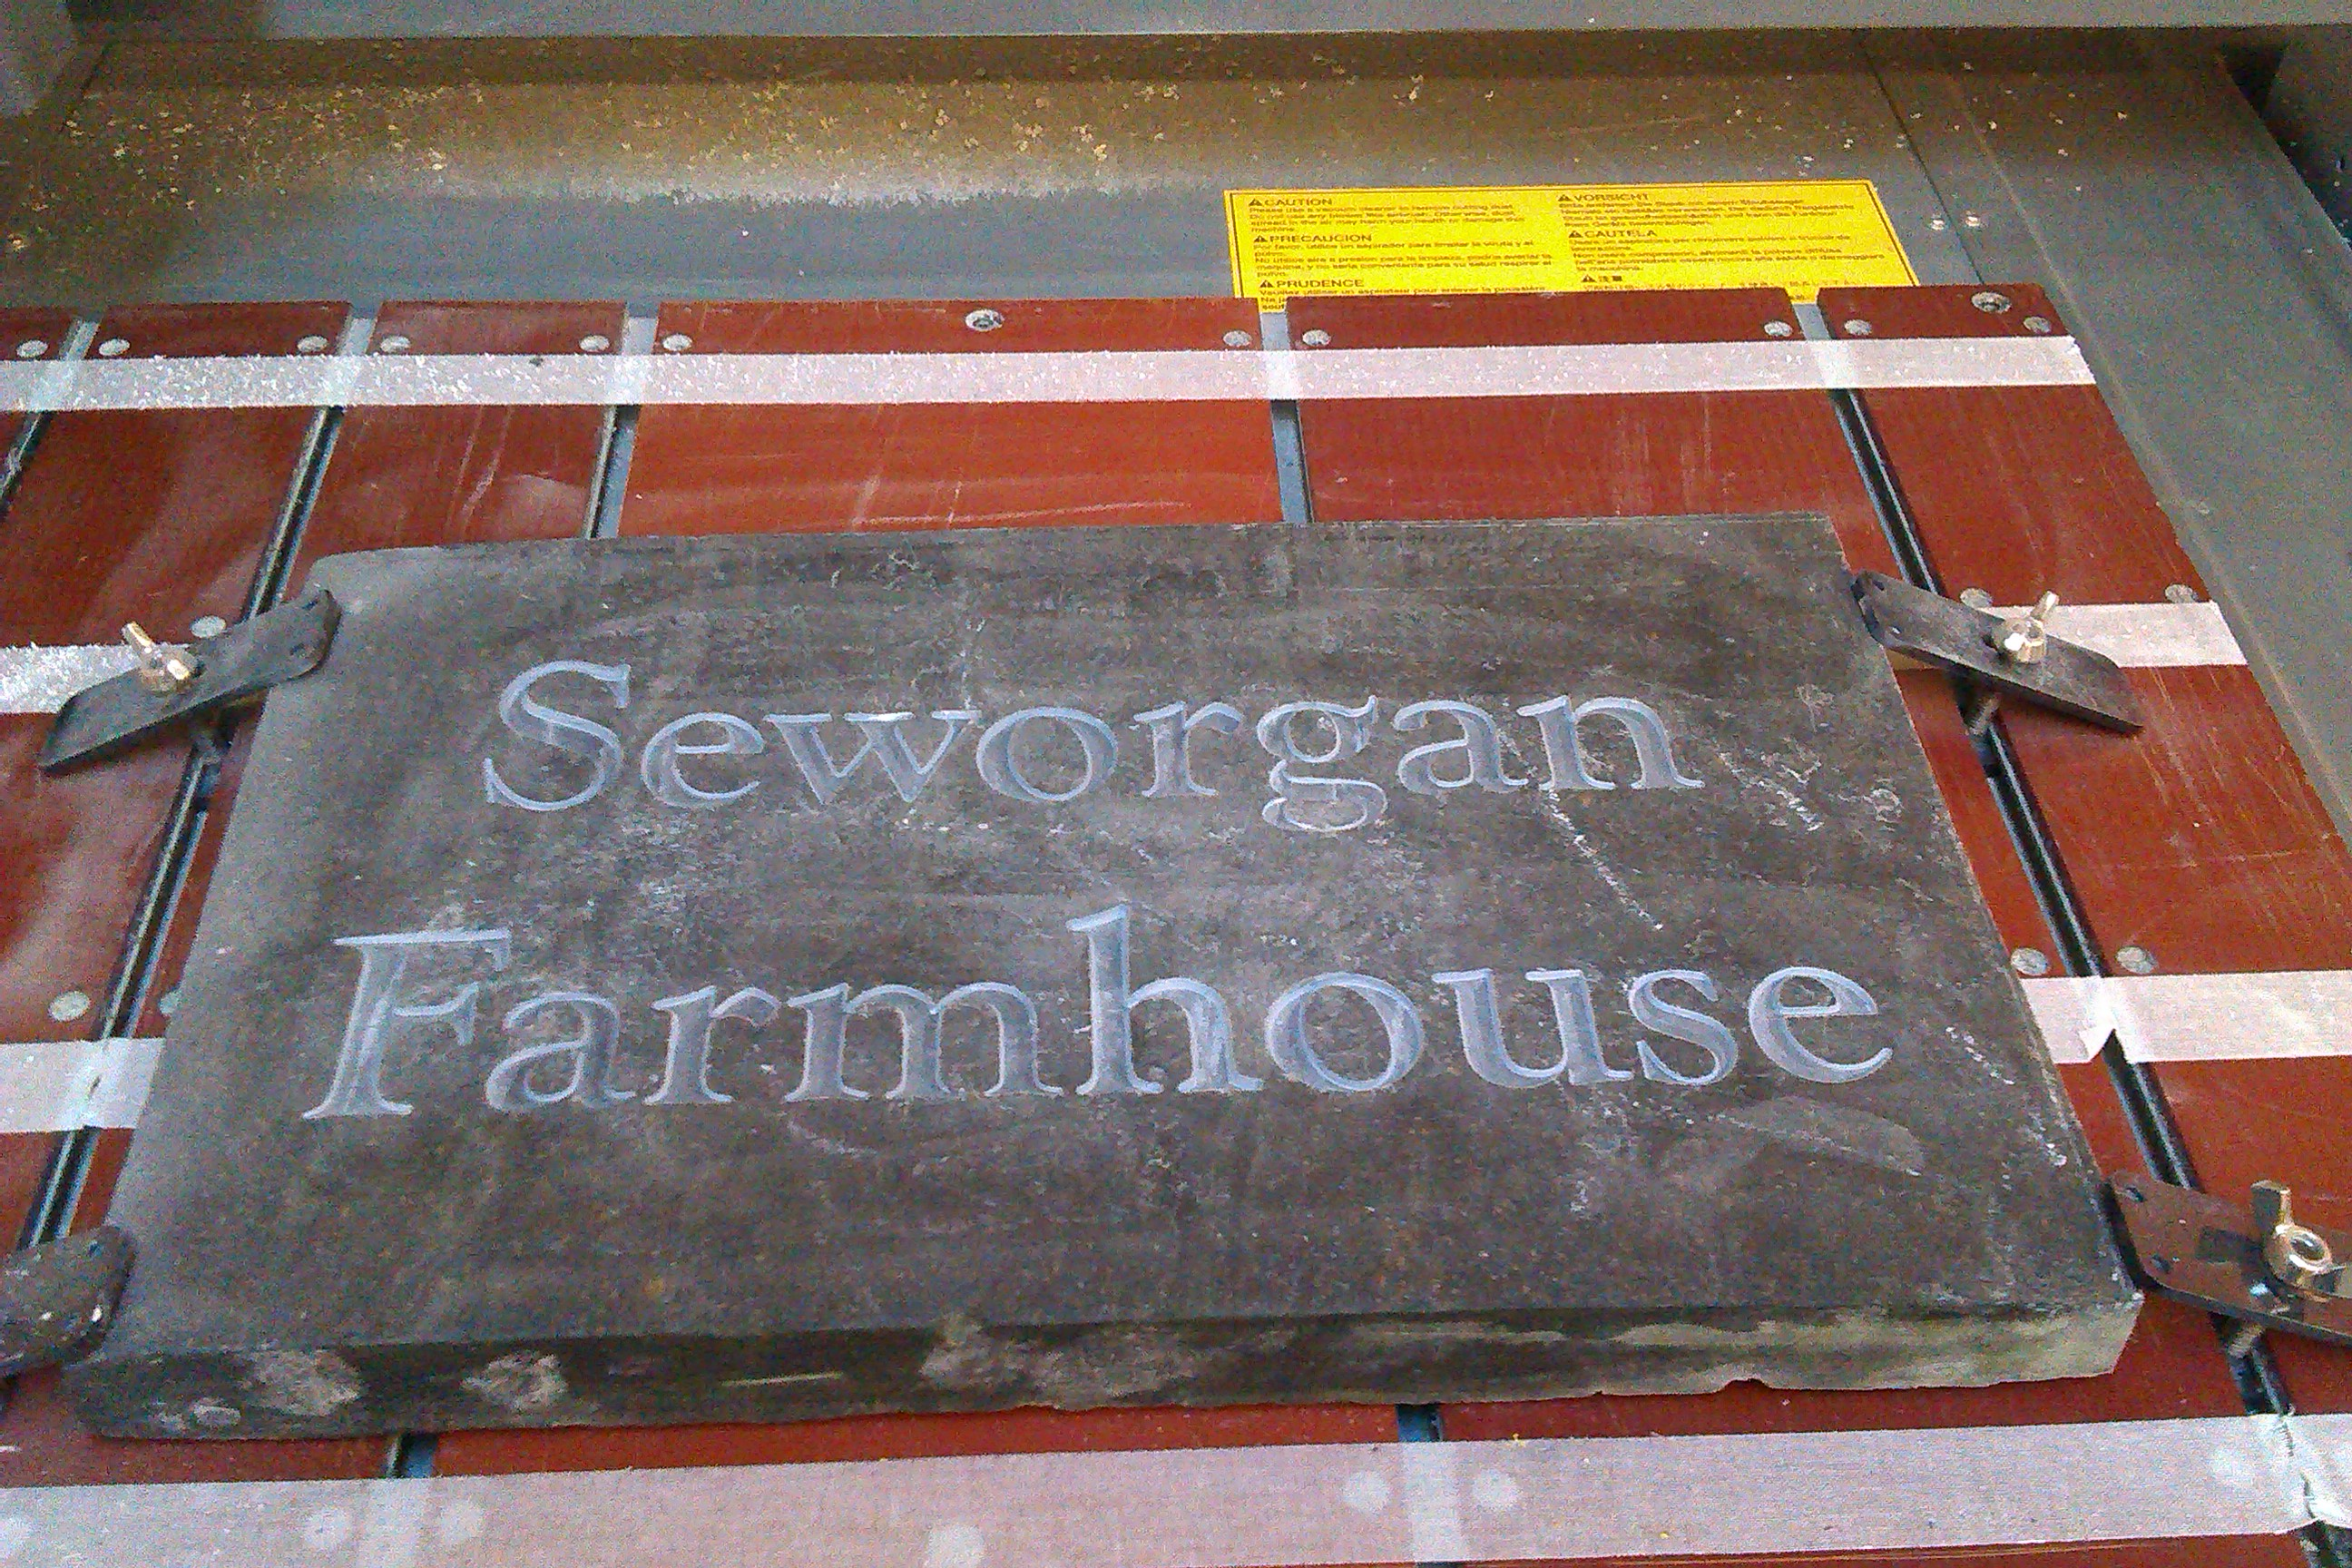 Seworgan Farmhouse sign